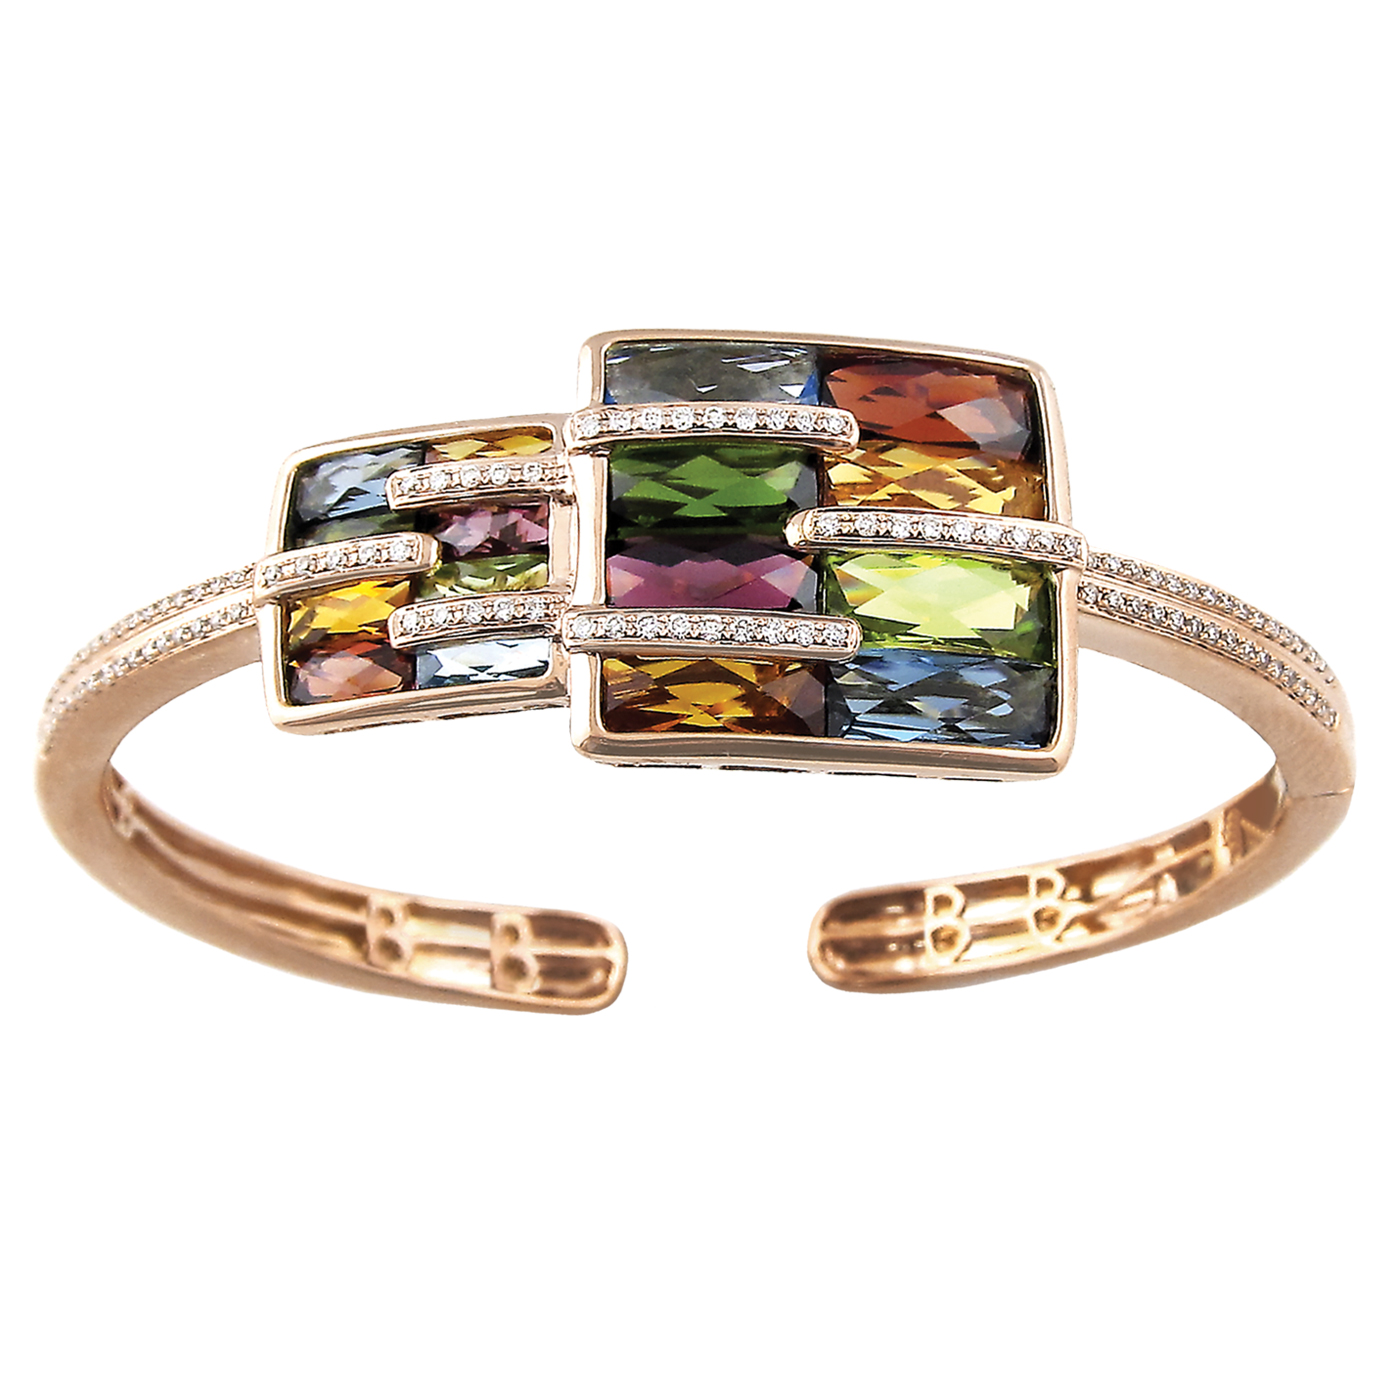 Boulevard I Bangle | Bellarri | Jewelry-Exposures International Gallery of Fine Art - Sedona AZ